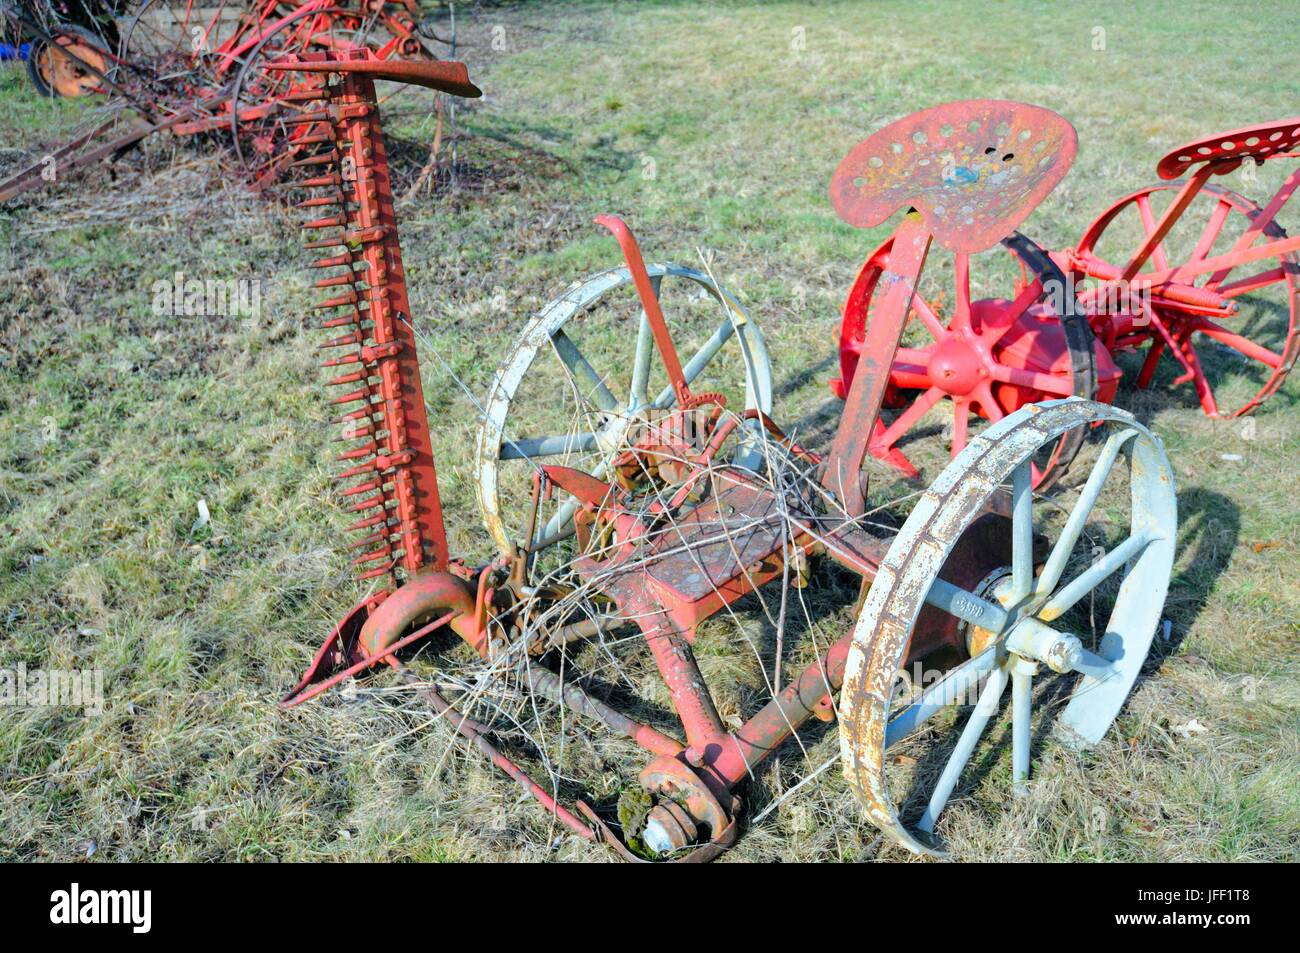 Mowers from yesteryear - Stock Image